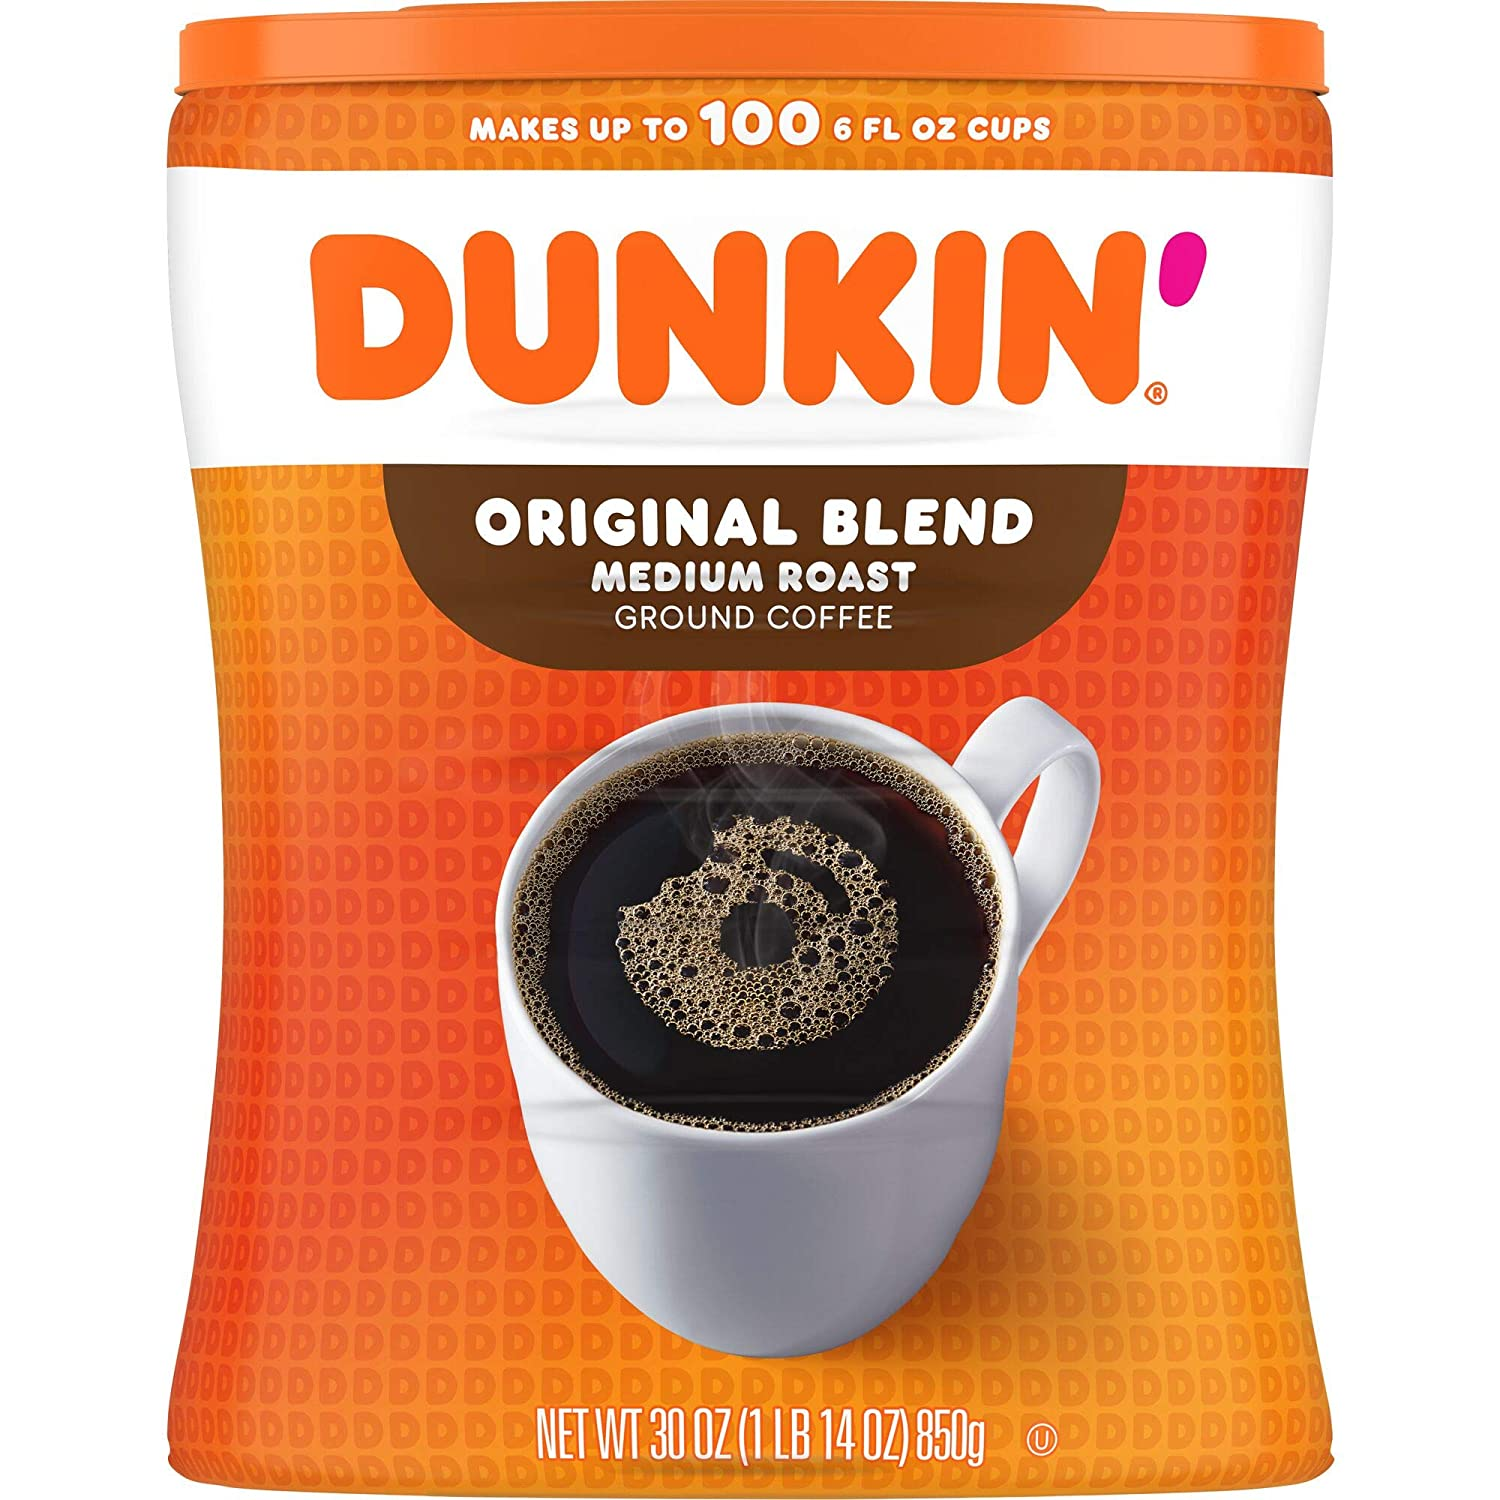 Dunkin' Original Blend Medium Roast Ground Coffee Canister, 30 Ounces (Packaging May Vary)